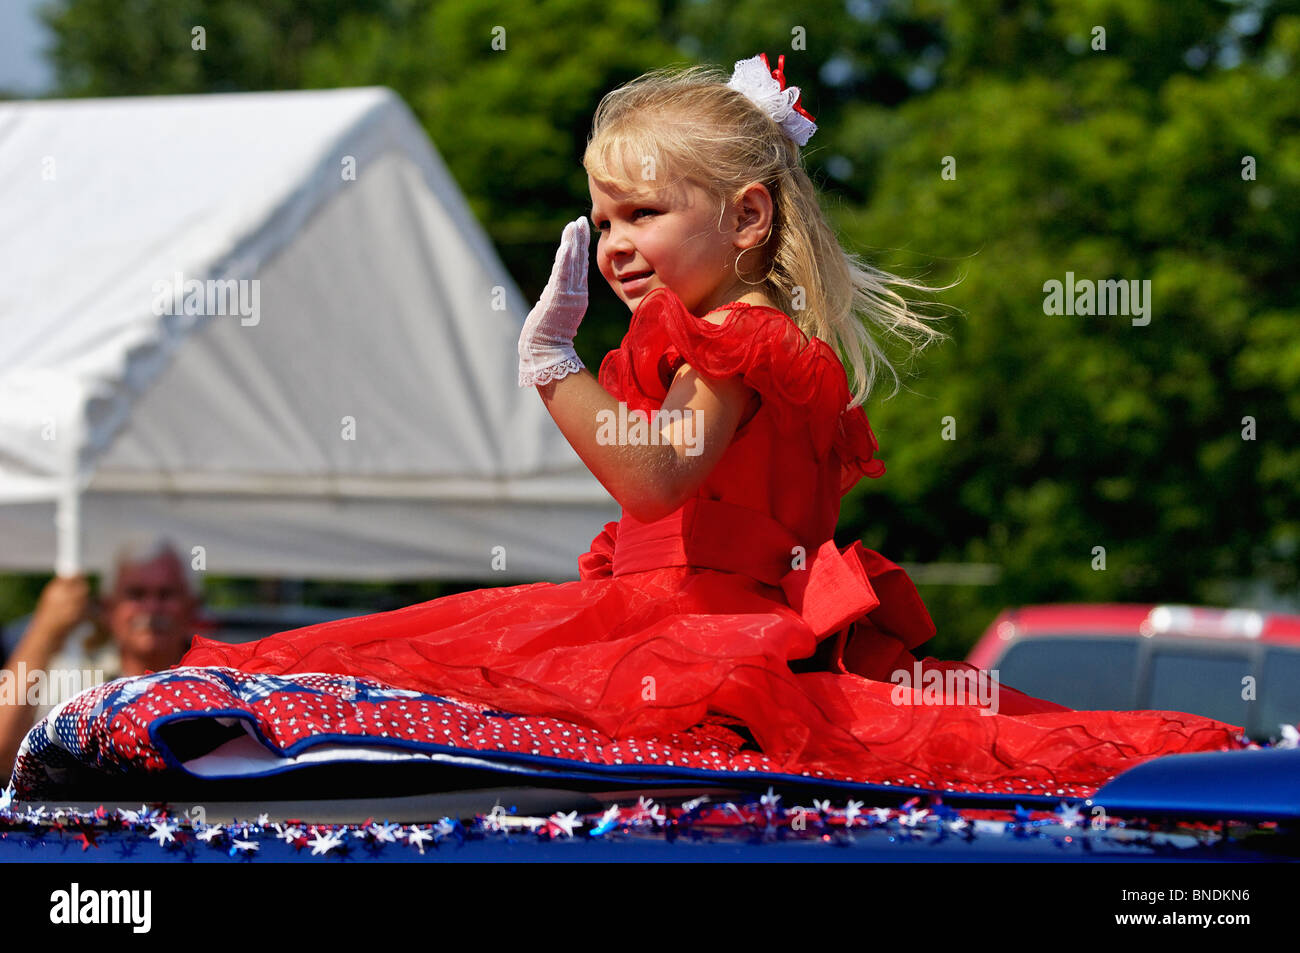 Princess Contestant in Oldest Continuous Independence Day Parade in America in New Pekin, Indiana - Stock Image